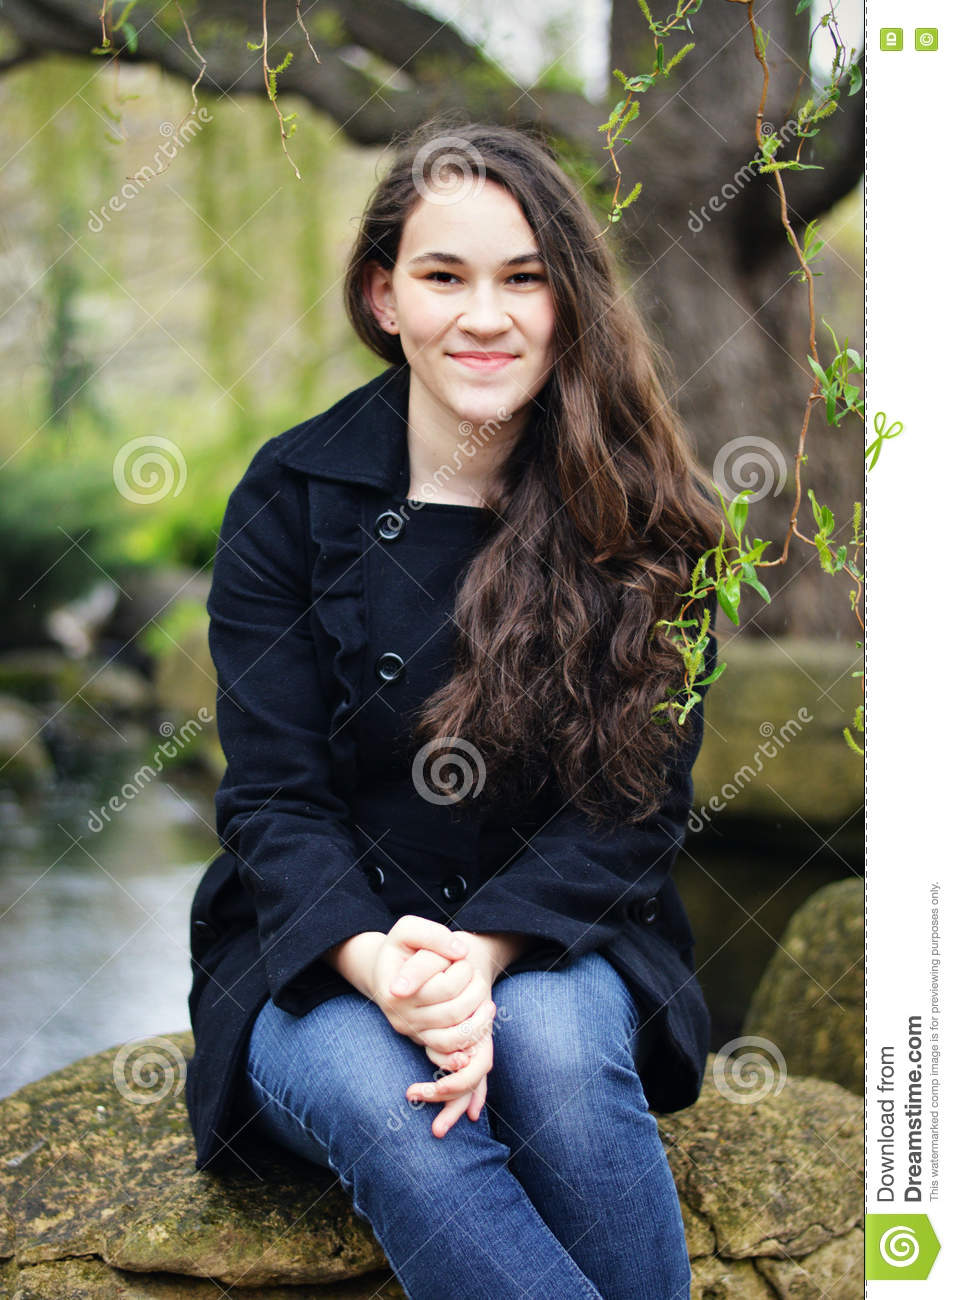 Girl sitting on rock suite